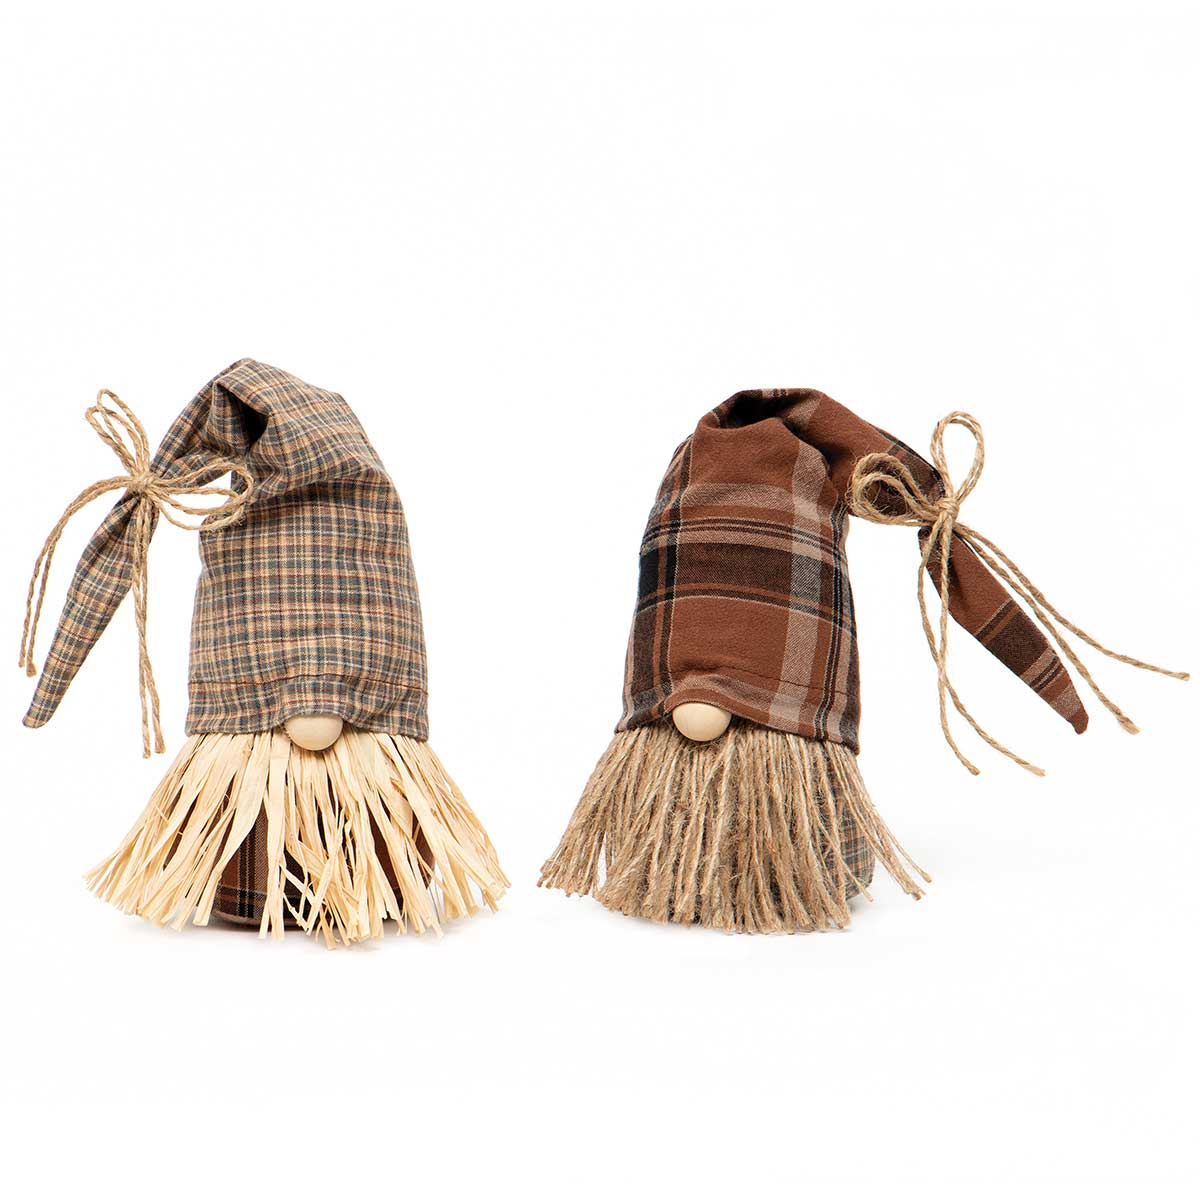 FALL FEST GNOME BROWN/TAN WITH PLAID FLOPPY HAT, WOOD